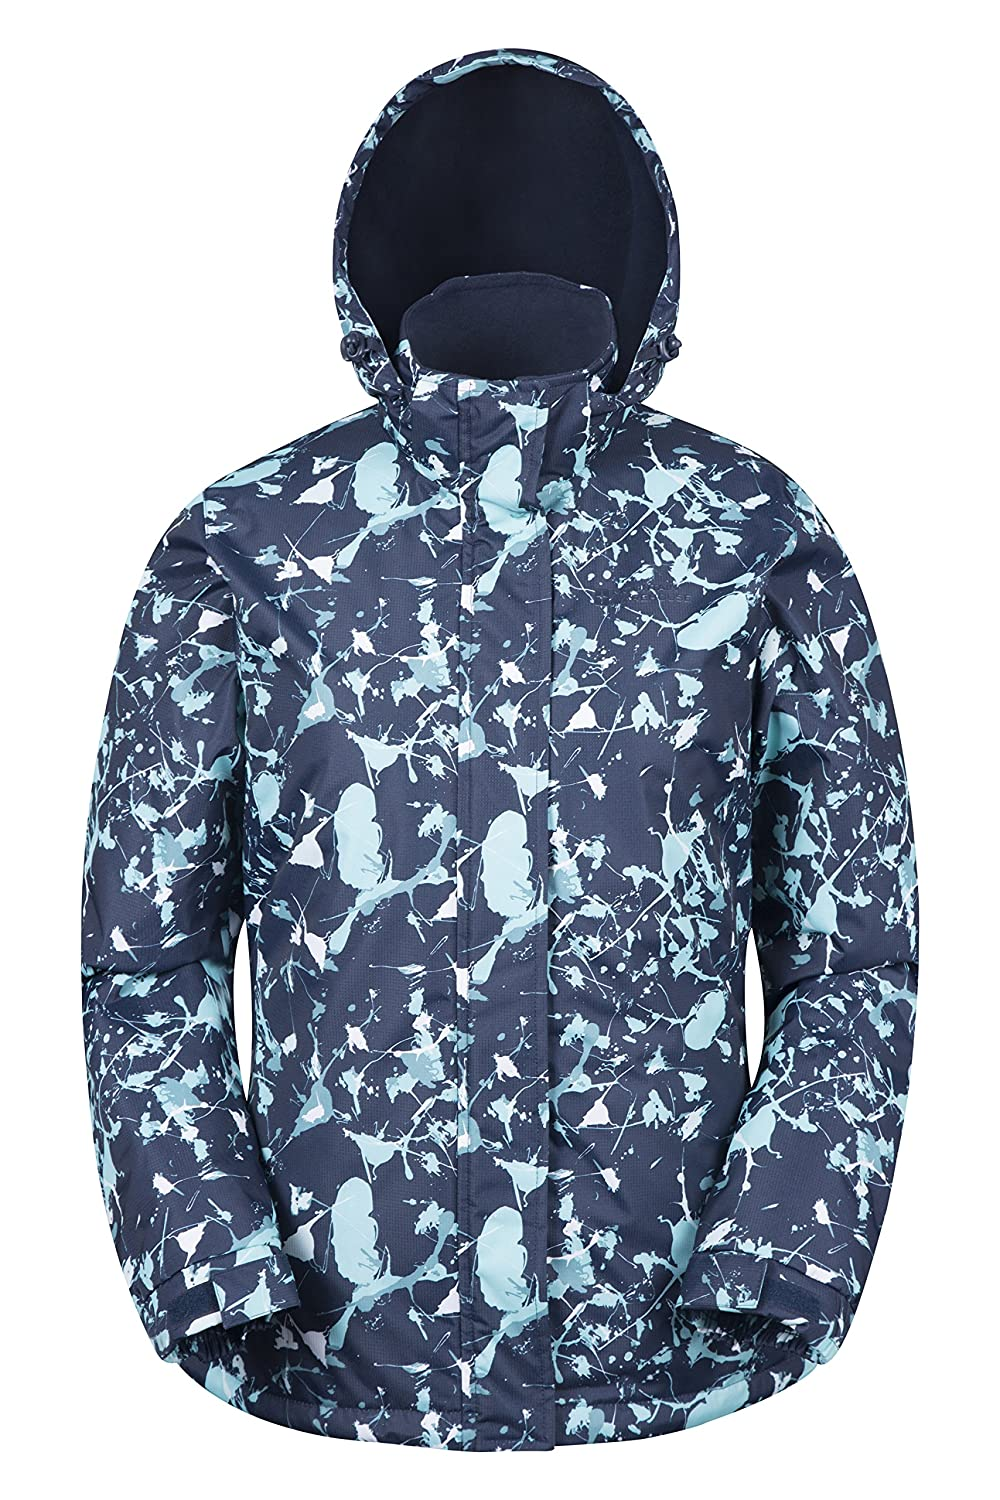 Mountain Warehouse Dawn Womens Ski Jacket - Snowproof, Warm Ladies Jacket, Fleece Lined Ski Coat, Adjustable Cuff, Hem & Hood - Ideal Ski Clothes In Cold Weather